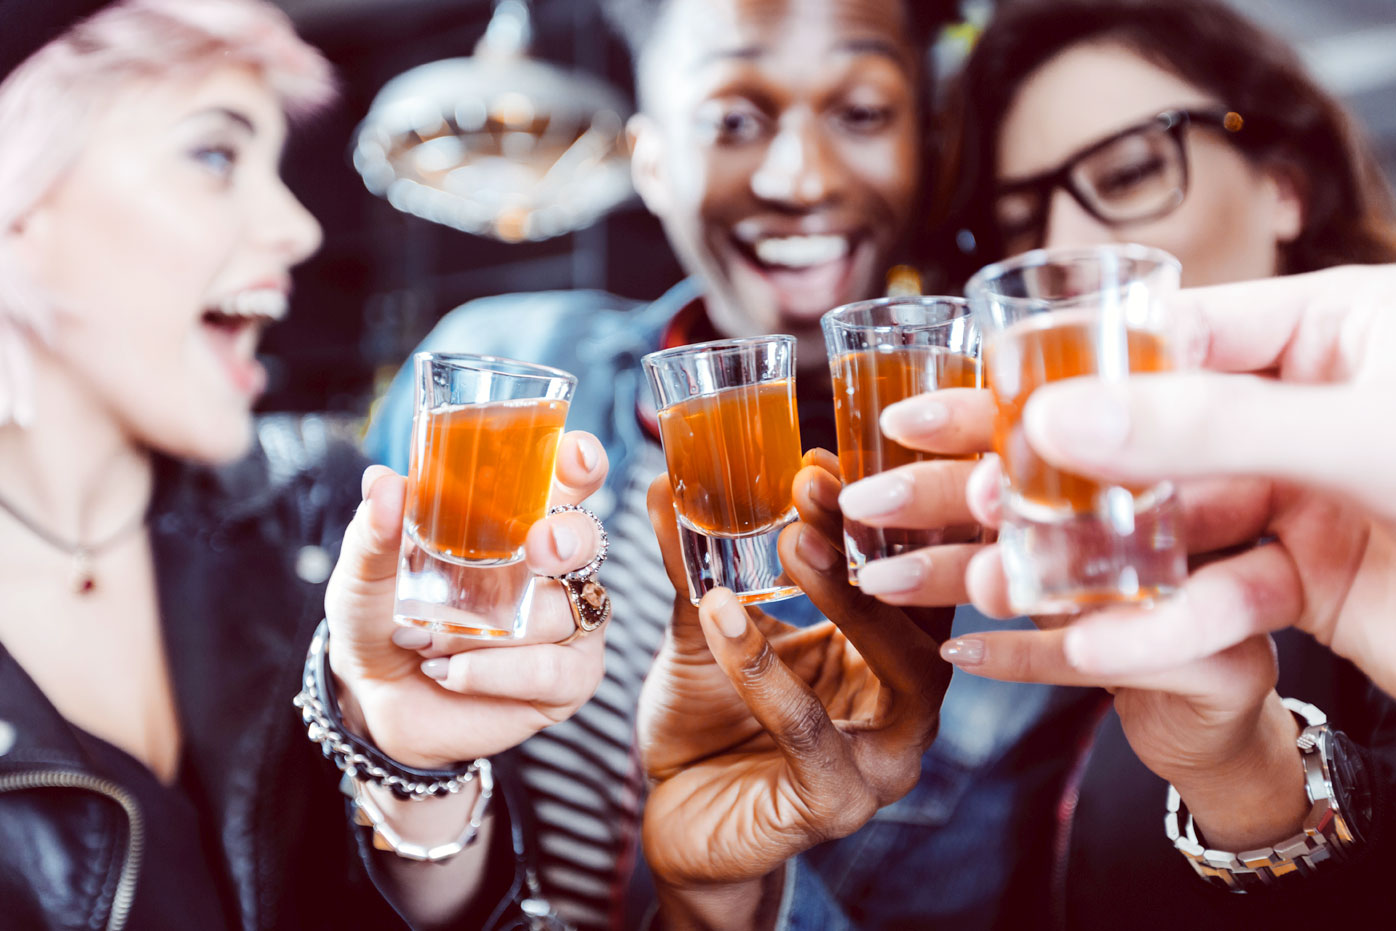 Hard alcohol could make you feel instantly sexier, according to science